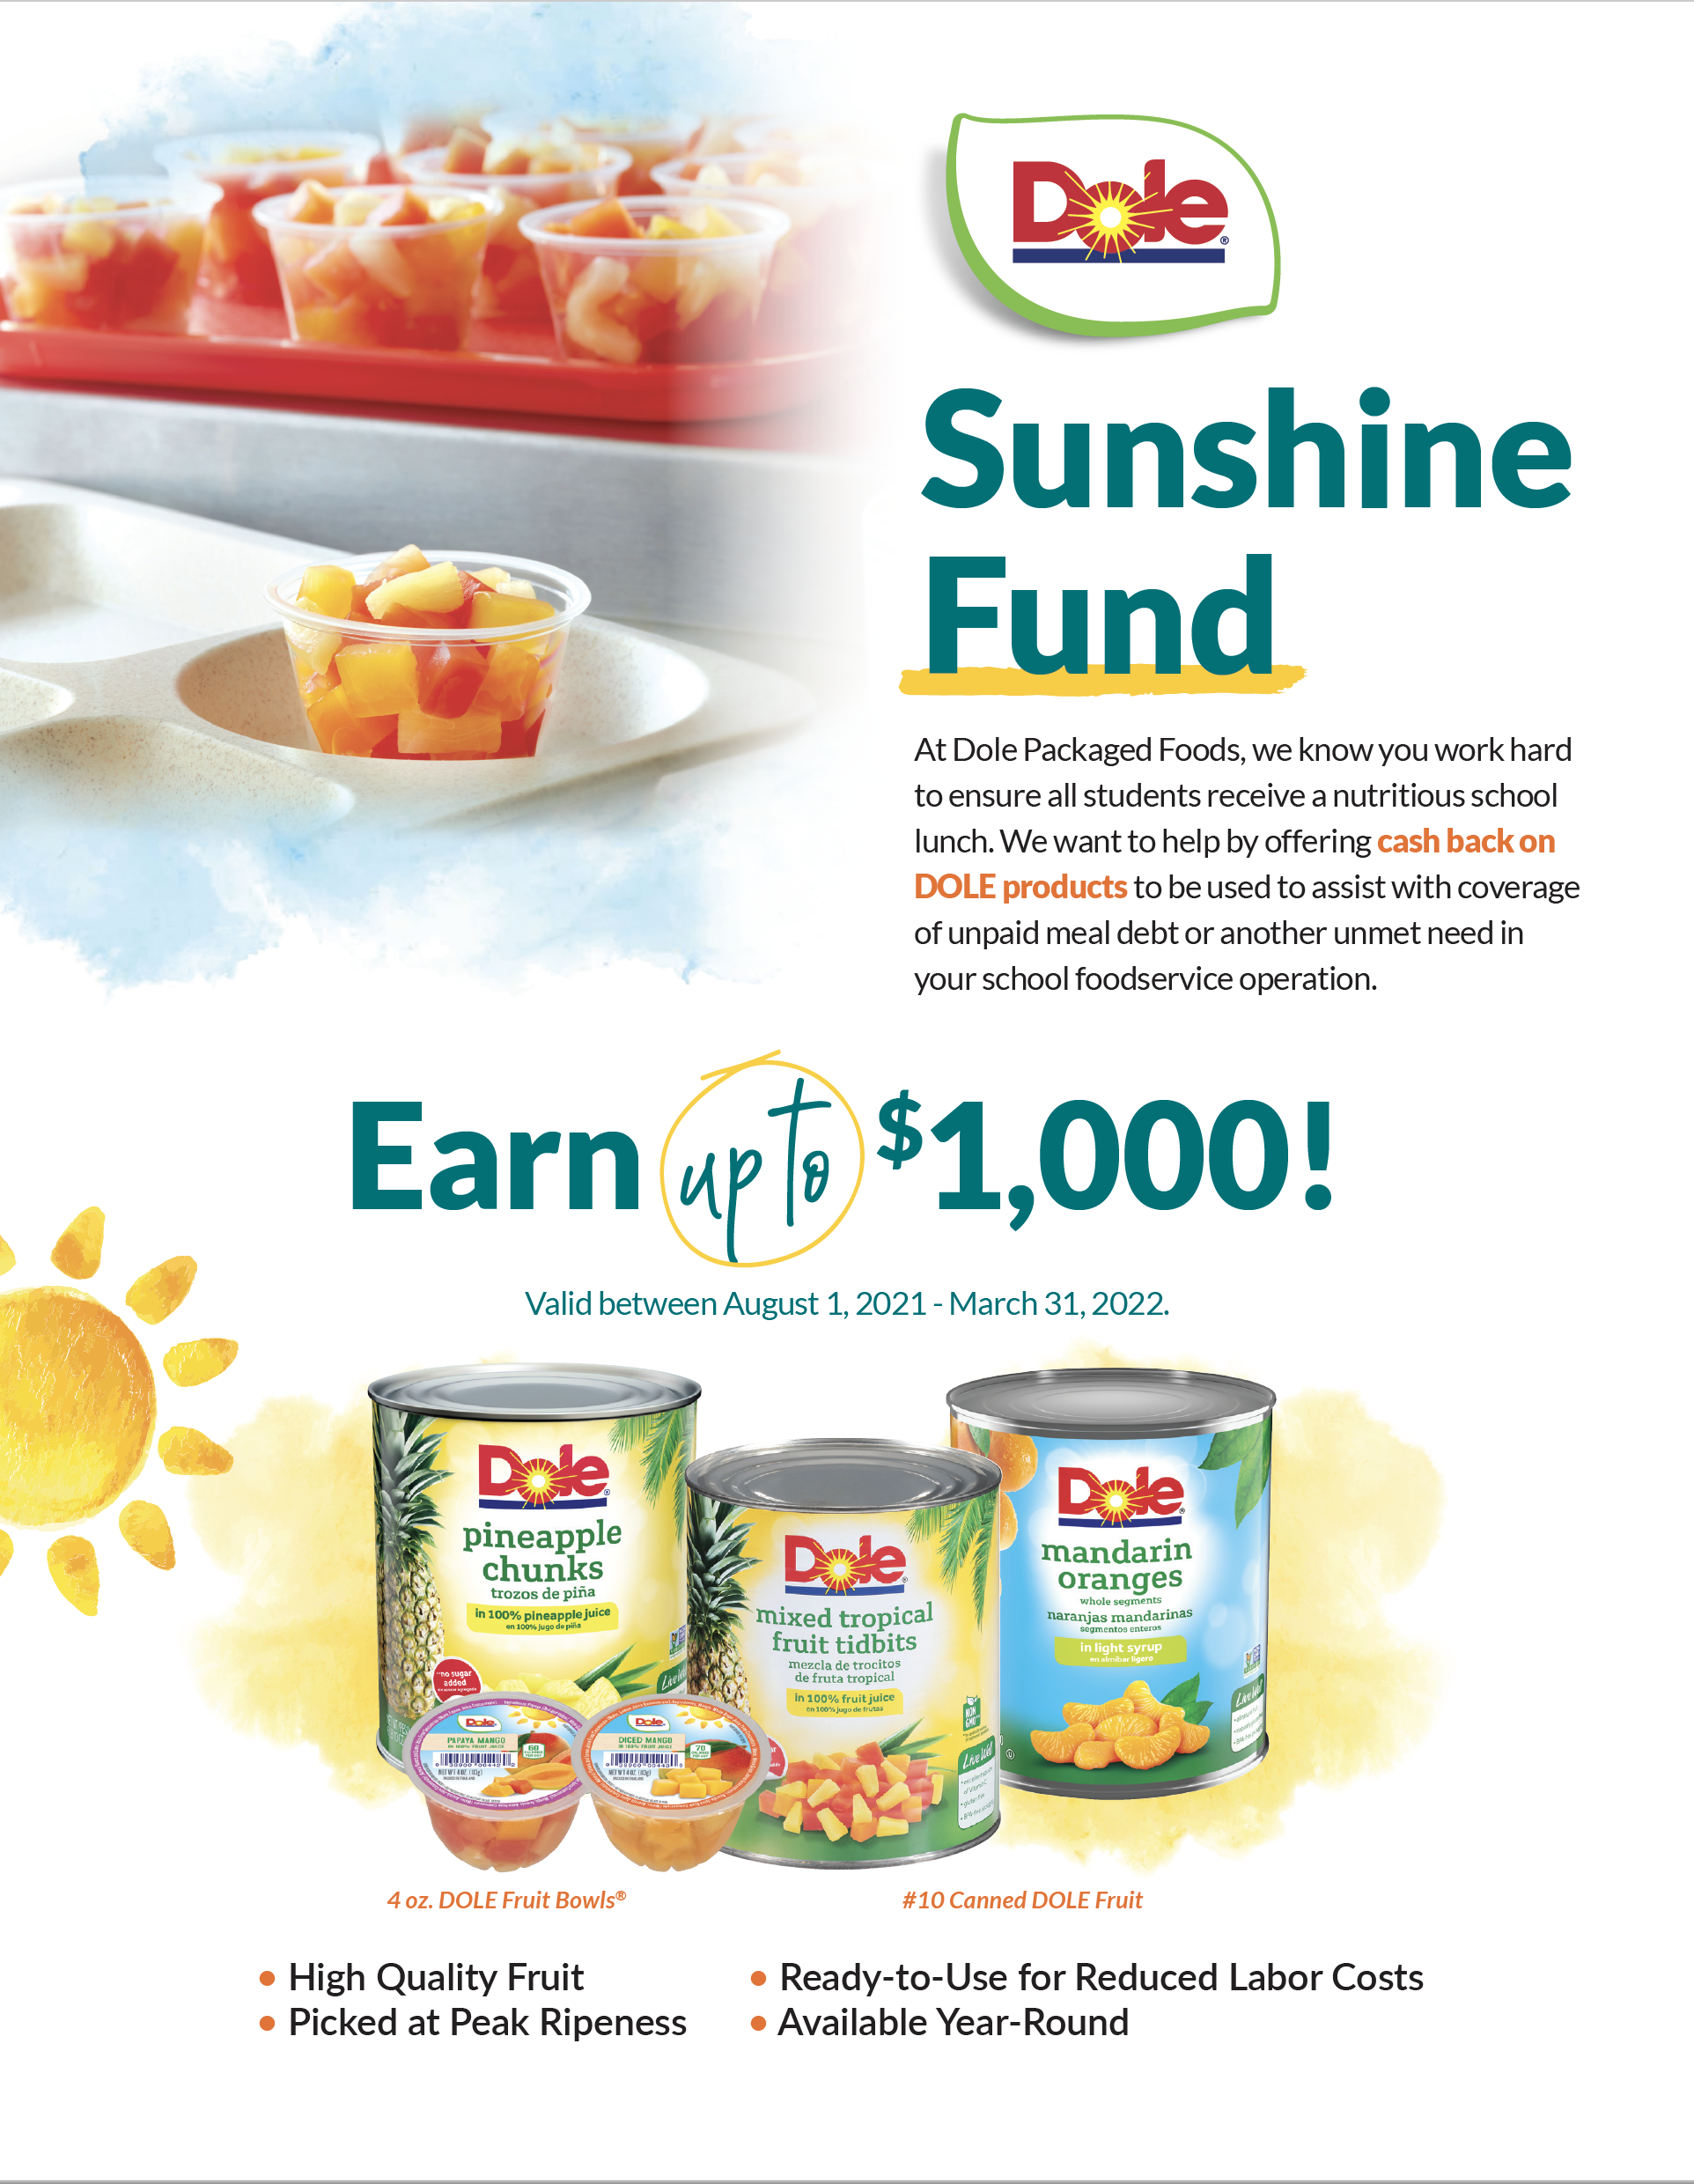 Pineapple Juice Trial Coupon (July 1 - March 31, 2022)